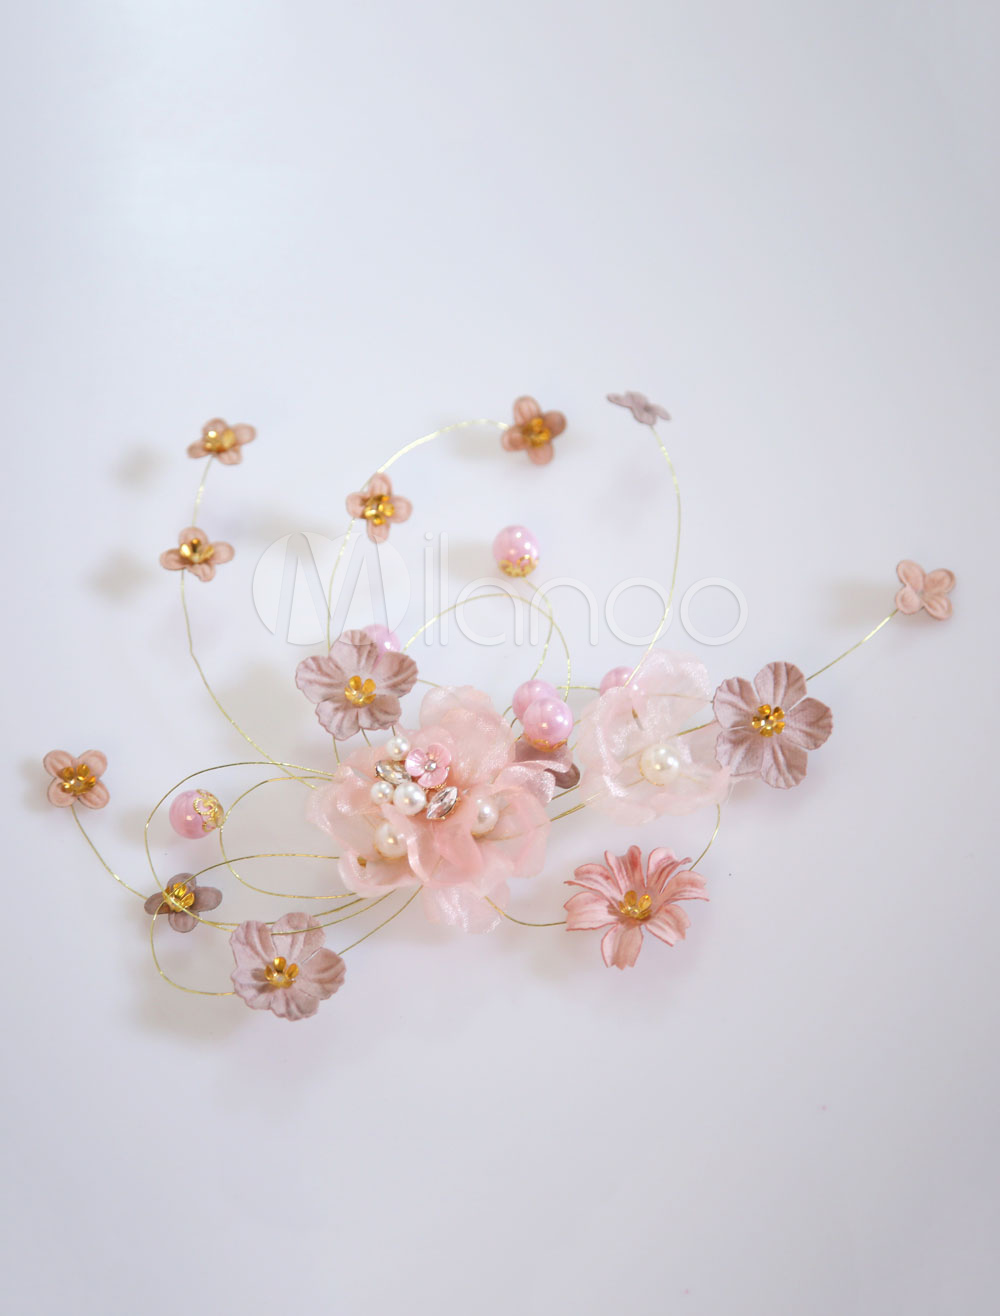 Buy Flowers Wedding Headpieces Pearls Salmon Bridal Hair Accessories for $11.99 in Milanoo store